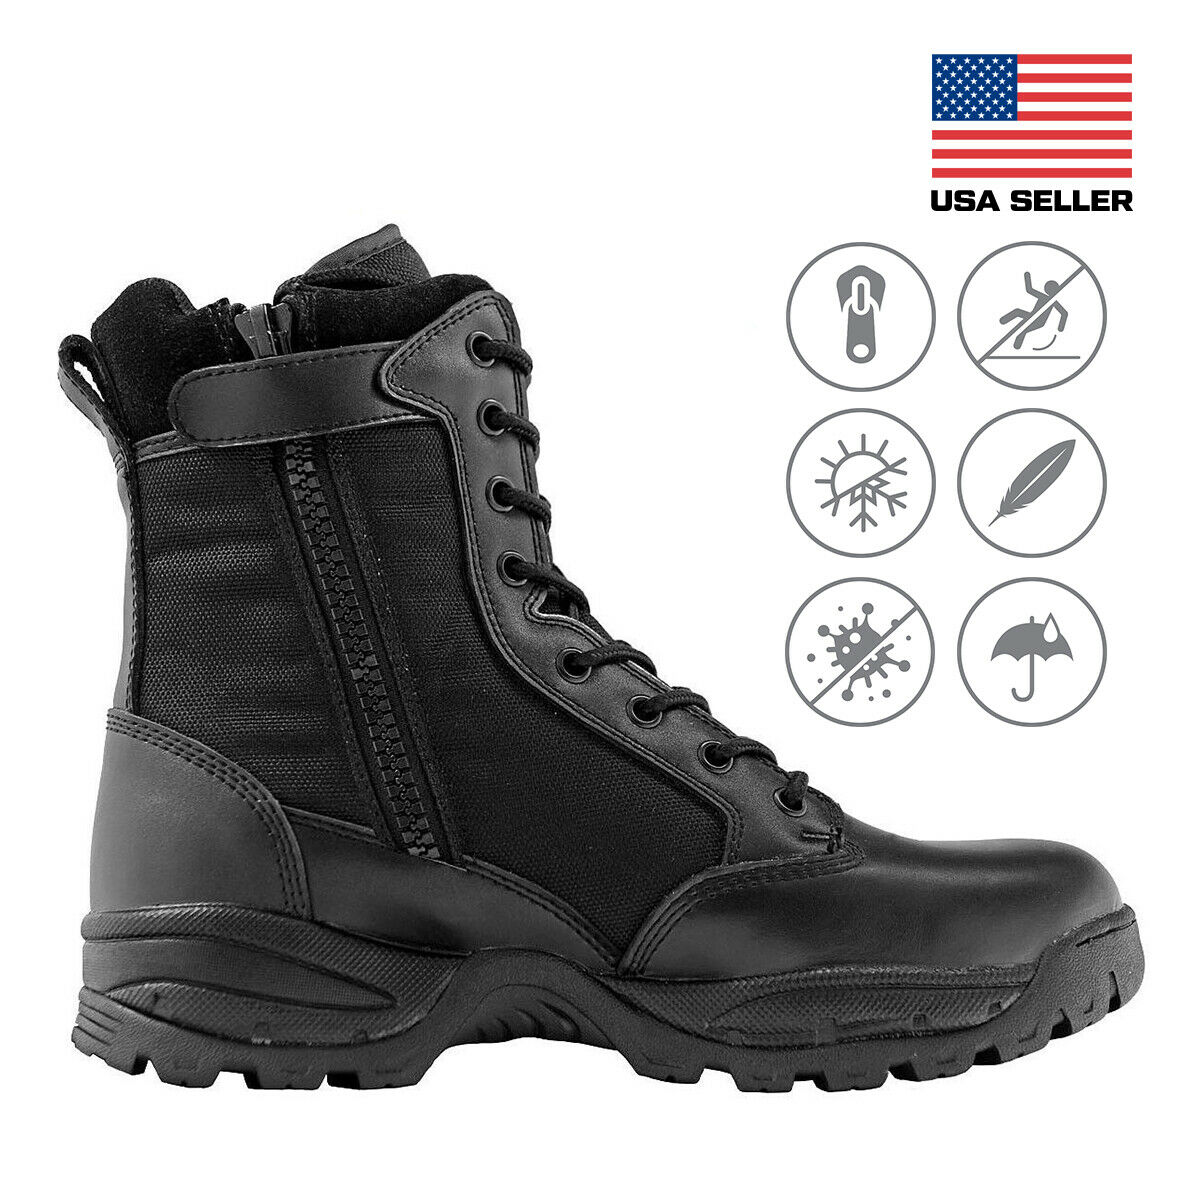 Maelstrom® TAC FORCE 8'' Men's Black Waterproof Insulated Boots with Zipper